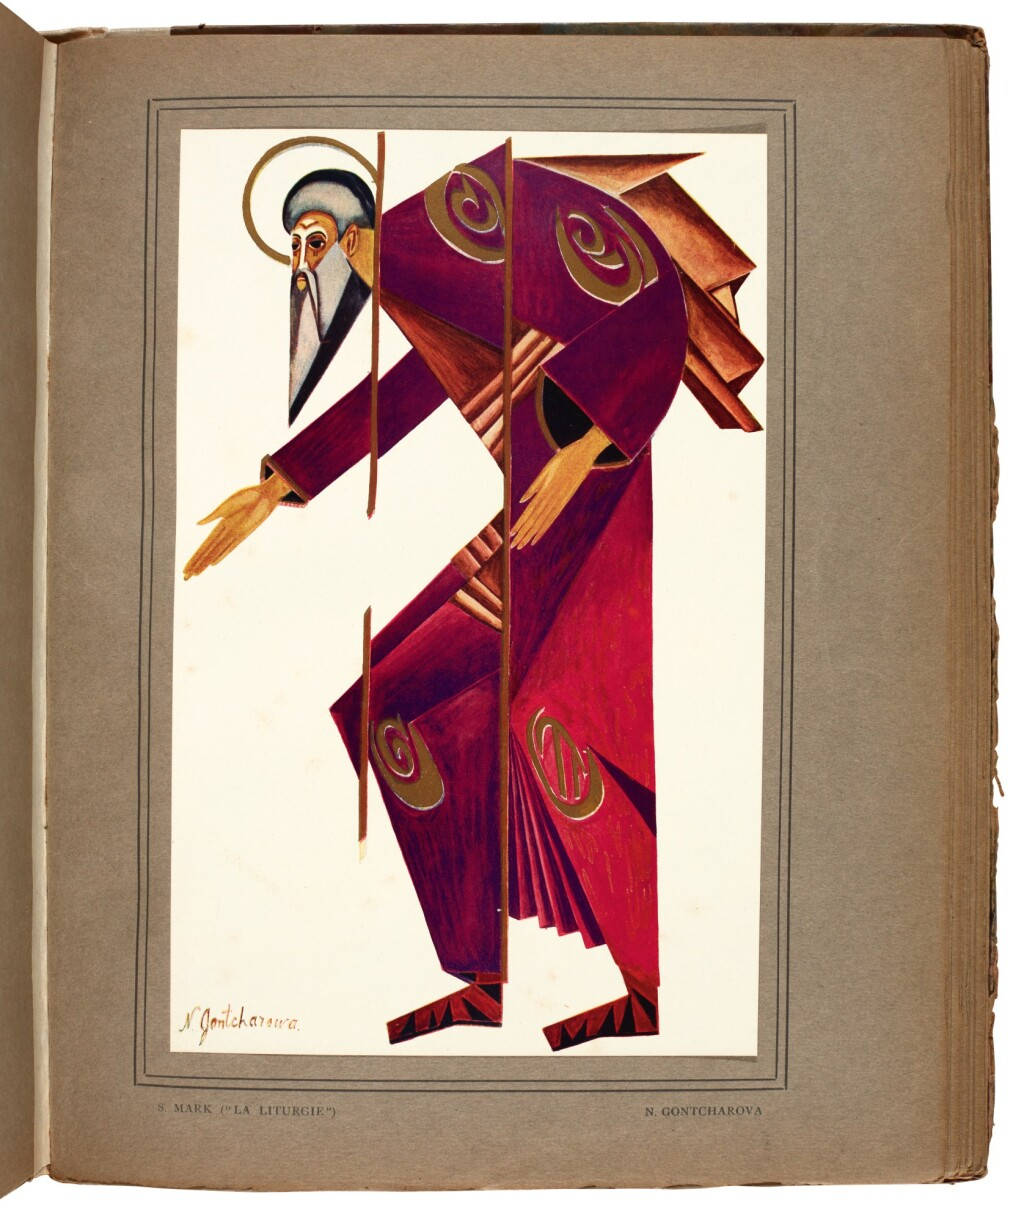 PROPERT, WALTER A. | THE RUSSIAN BALLET IN WESTERN EUROPE, 1909-1920, WITH A CHAPTER ON THE MUSIC BY EUGÈNE GOOSSENS. LONDON: JOHN LANE, THE BODLEY HEAD, 1921